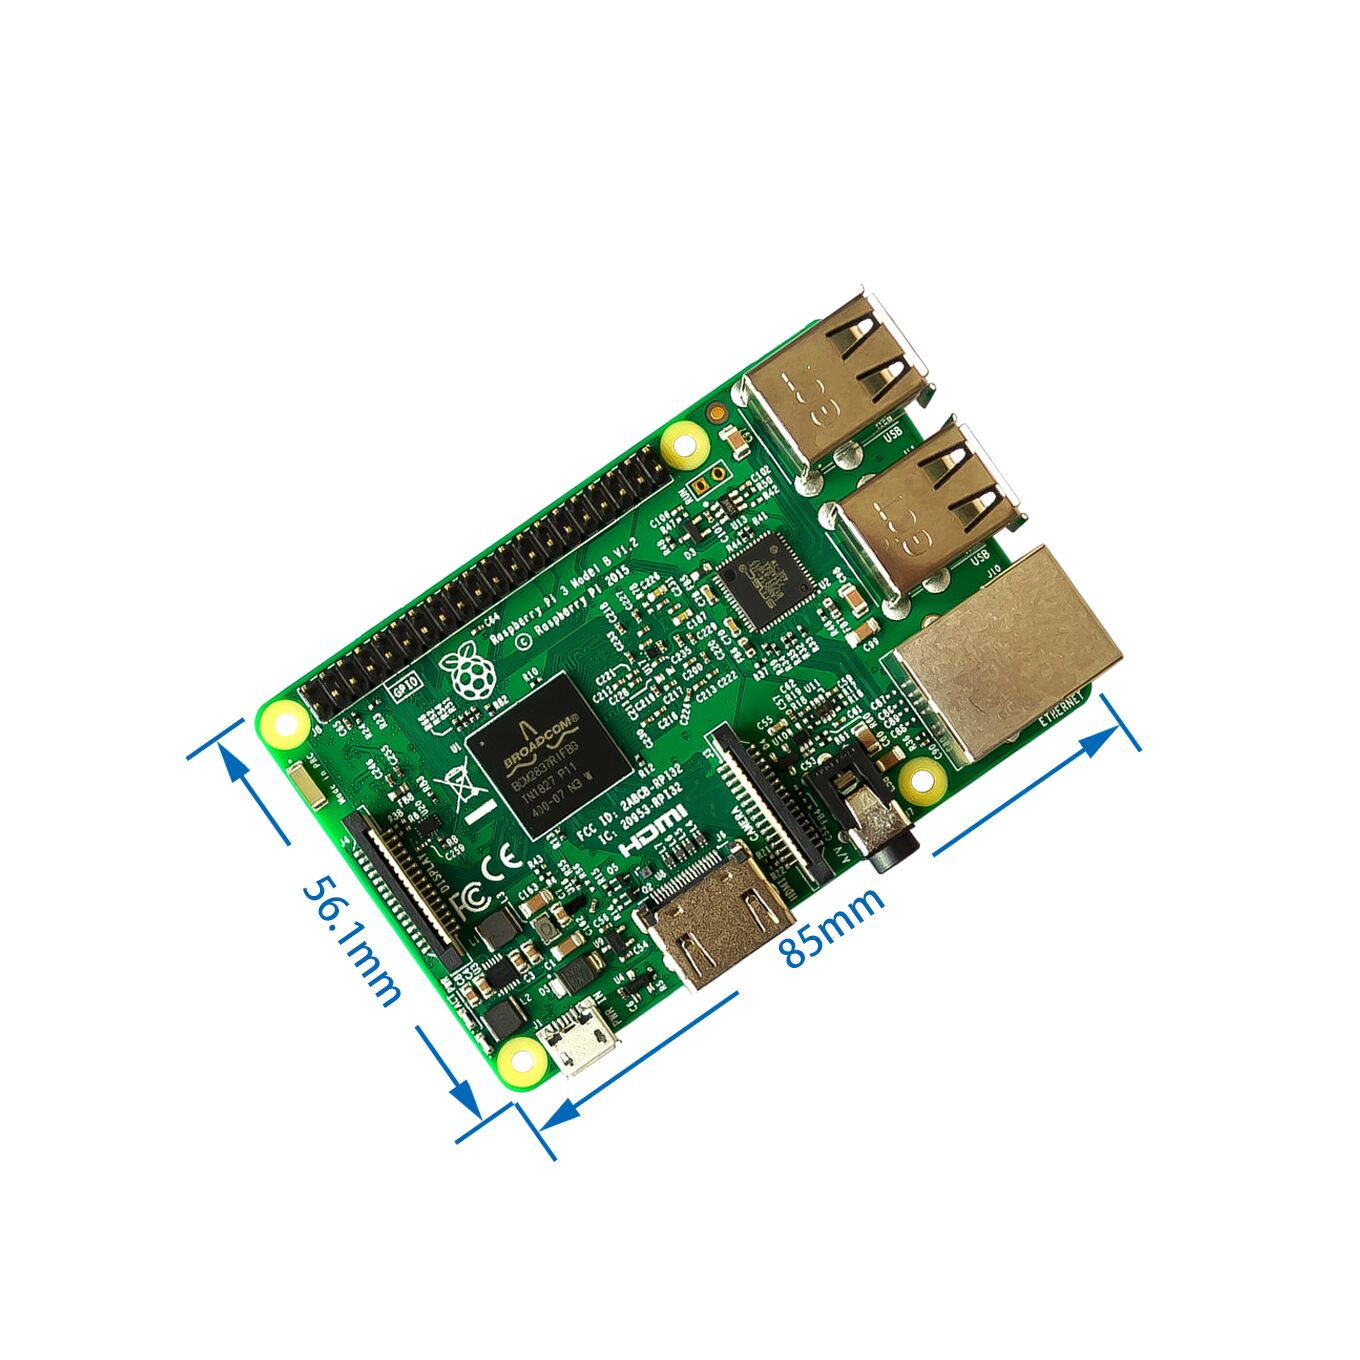 2018 New original Raspberry Pi 3 Model B Board 1GB LPDDR2 BCM2837 Quad-Core Ras PI3 B,PI 3B,PI 3 B with WiFi&Bluetooth2018 New original Raspberry Pi 3 Model B Board 1GB LPDDR2 BCM2837 Quad-Core Ras PI3 B,PI 3B,PI 3 B with WiFi&Bluetooth